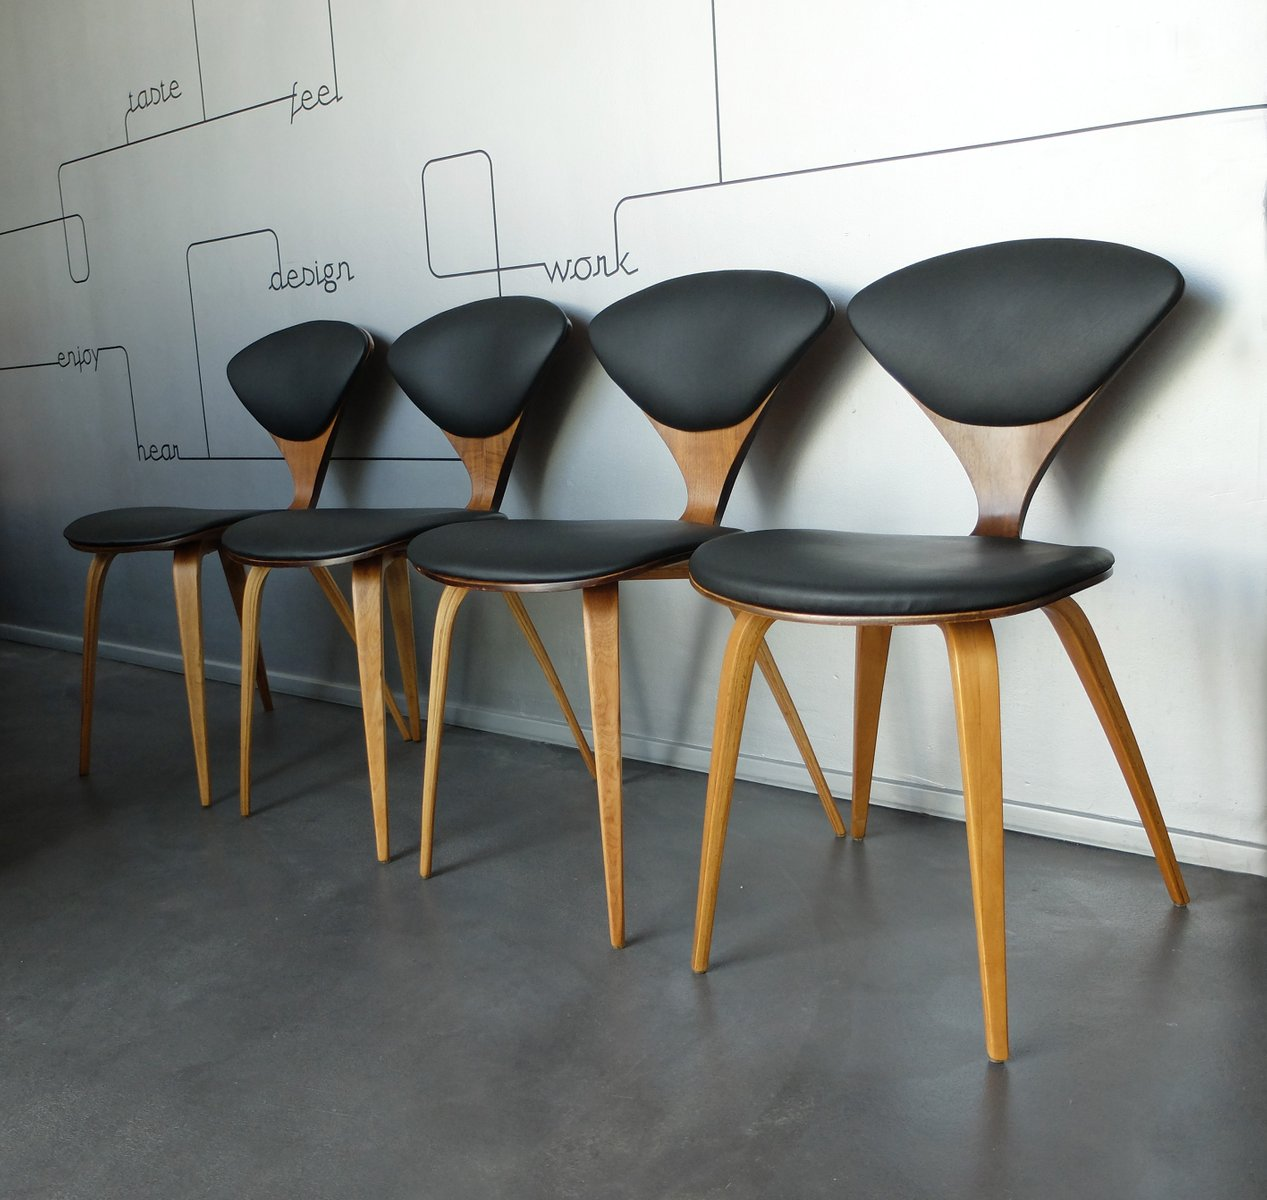 Vintage Plywood Chairs By Norman Cherner For Plycraft, Set Of 4